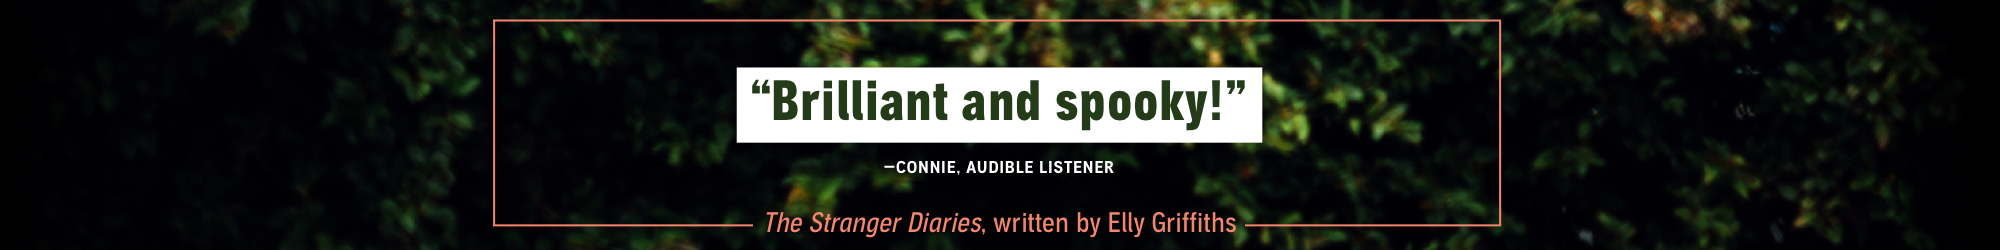 Brilliant and spooky! - Connie, Audible Listener; The Stranger Diaries by Elly Griffiths